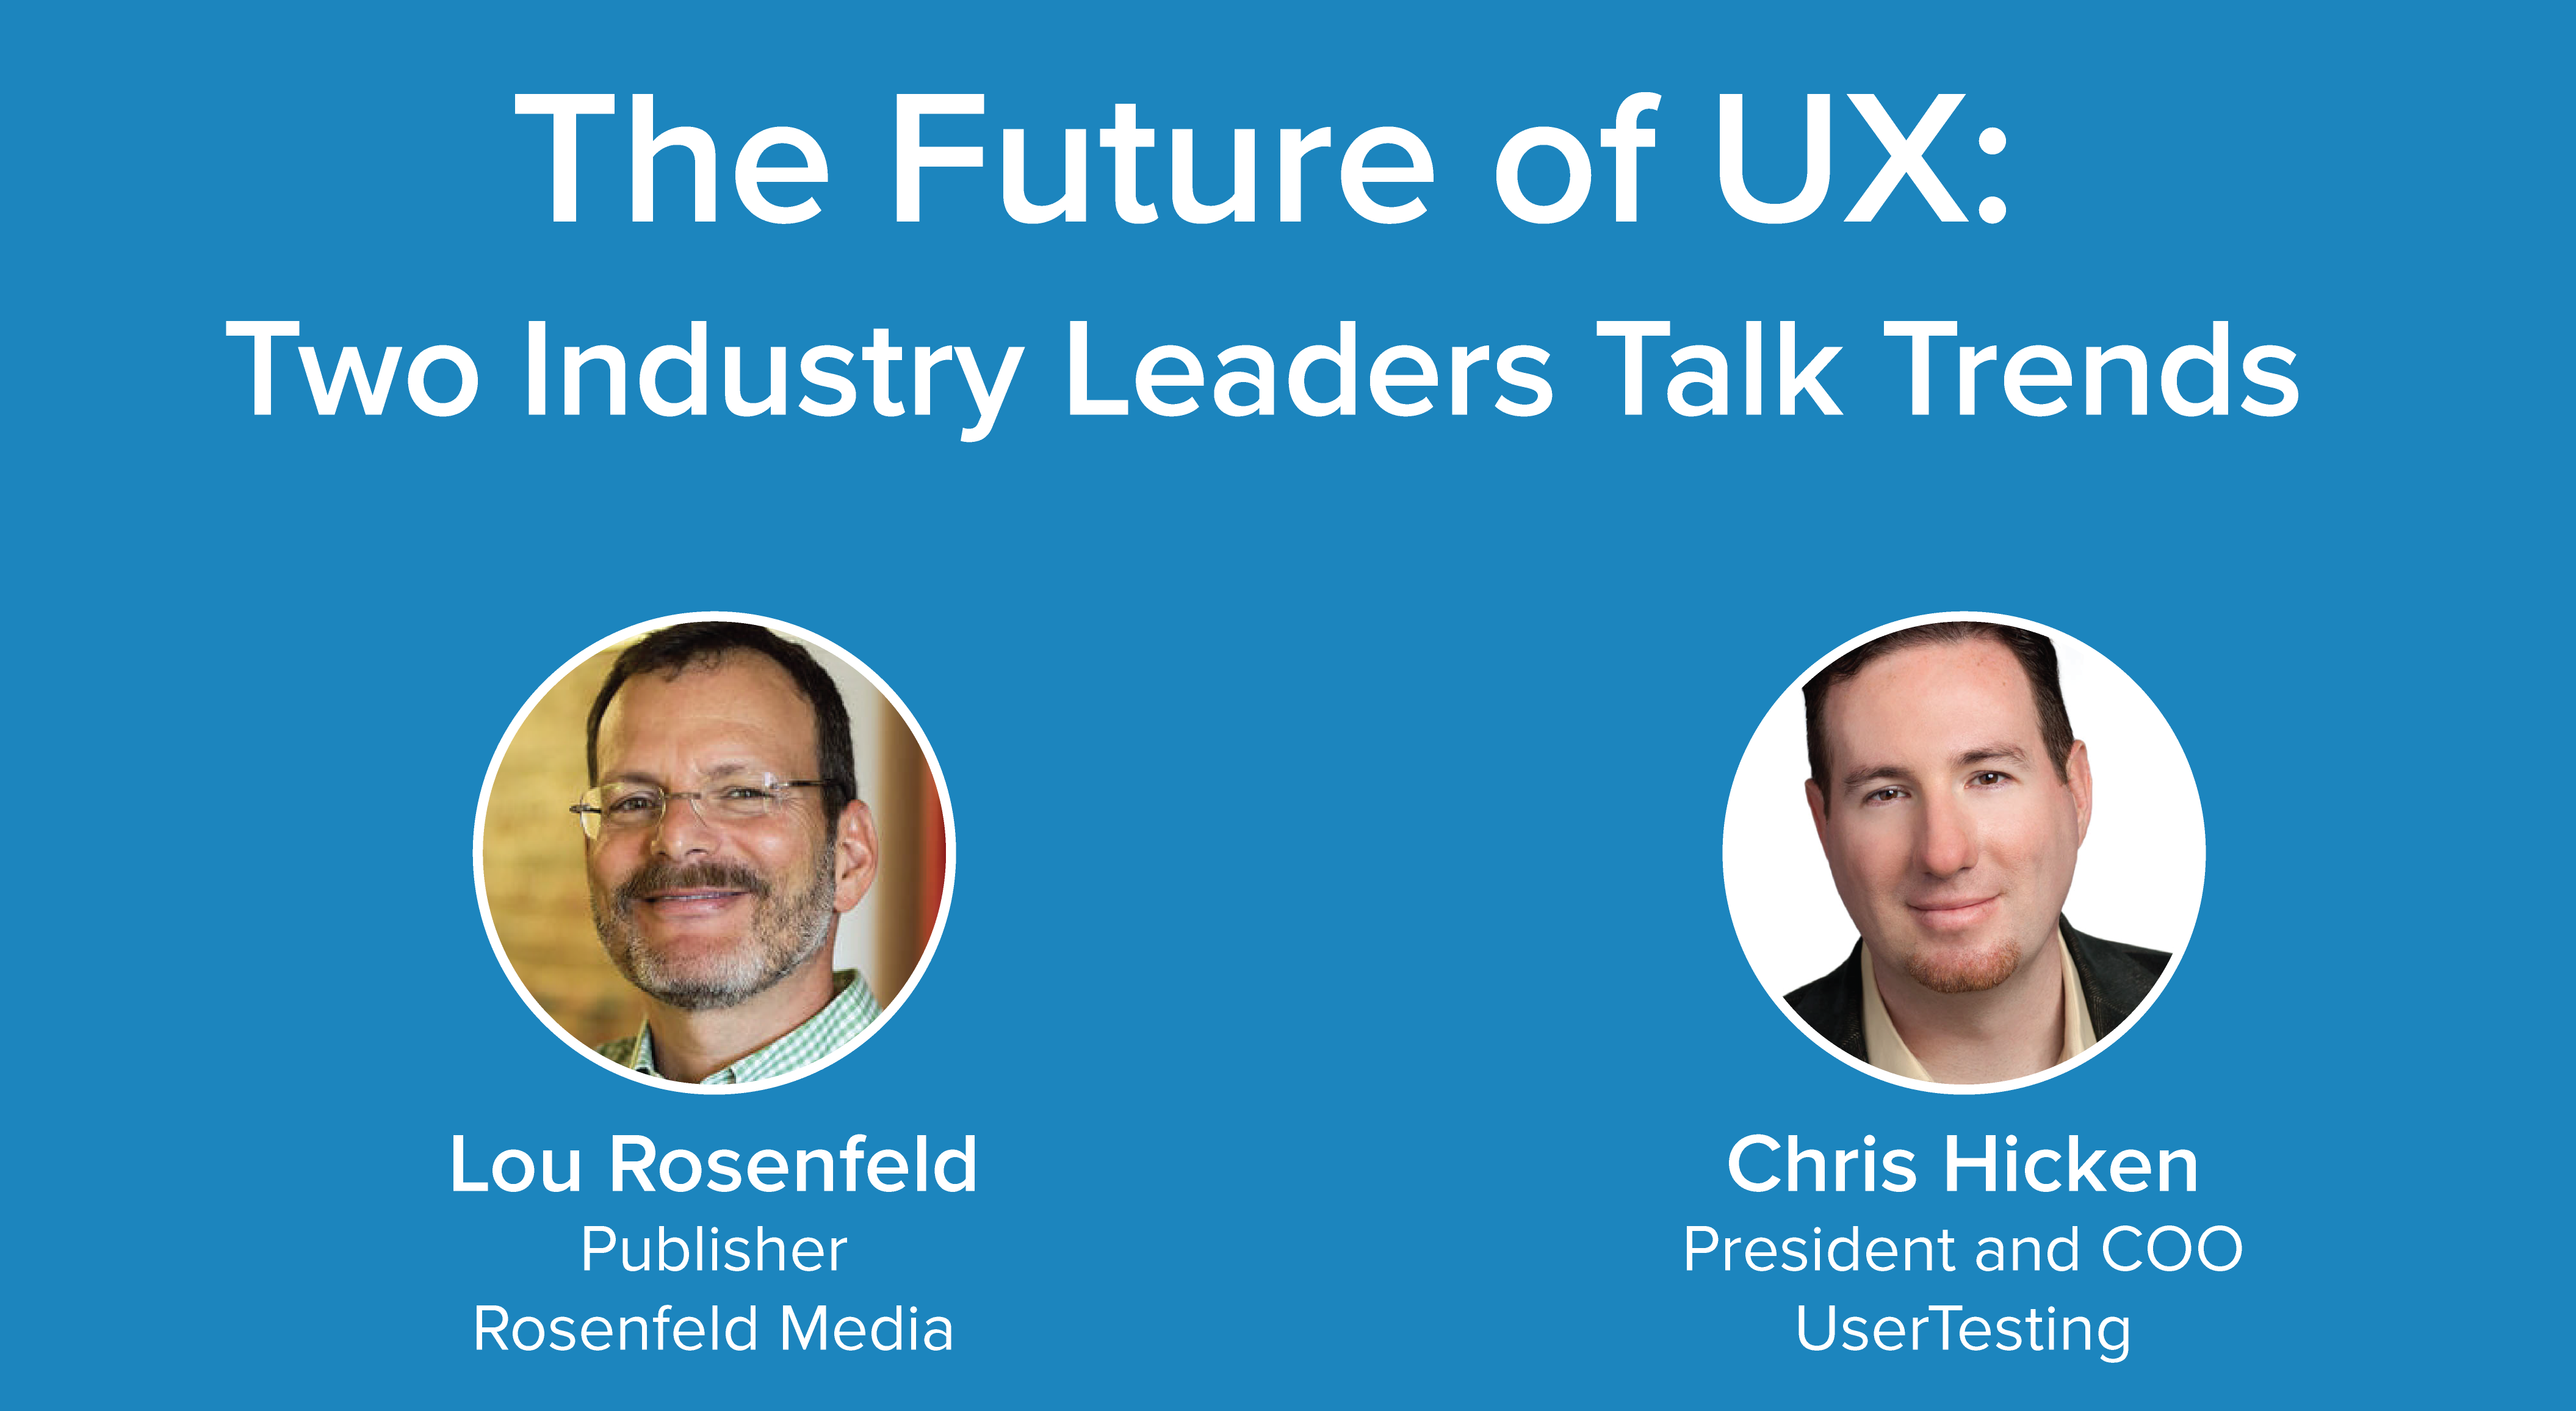 The future of UX: Q&A with industry leaders